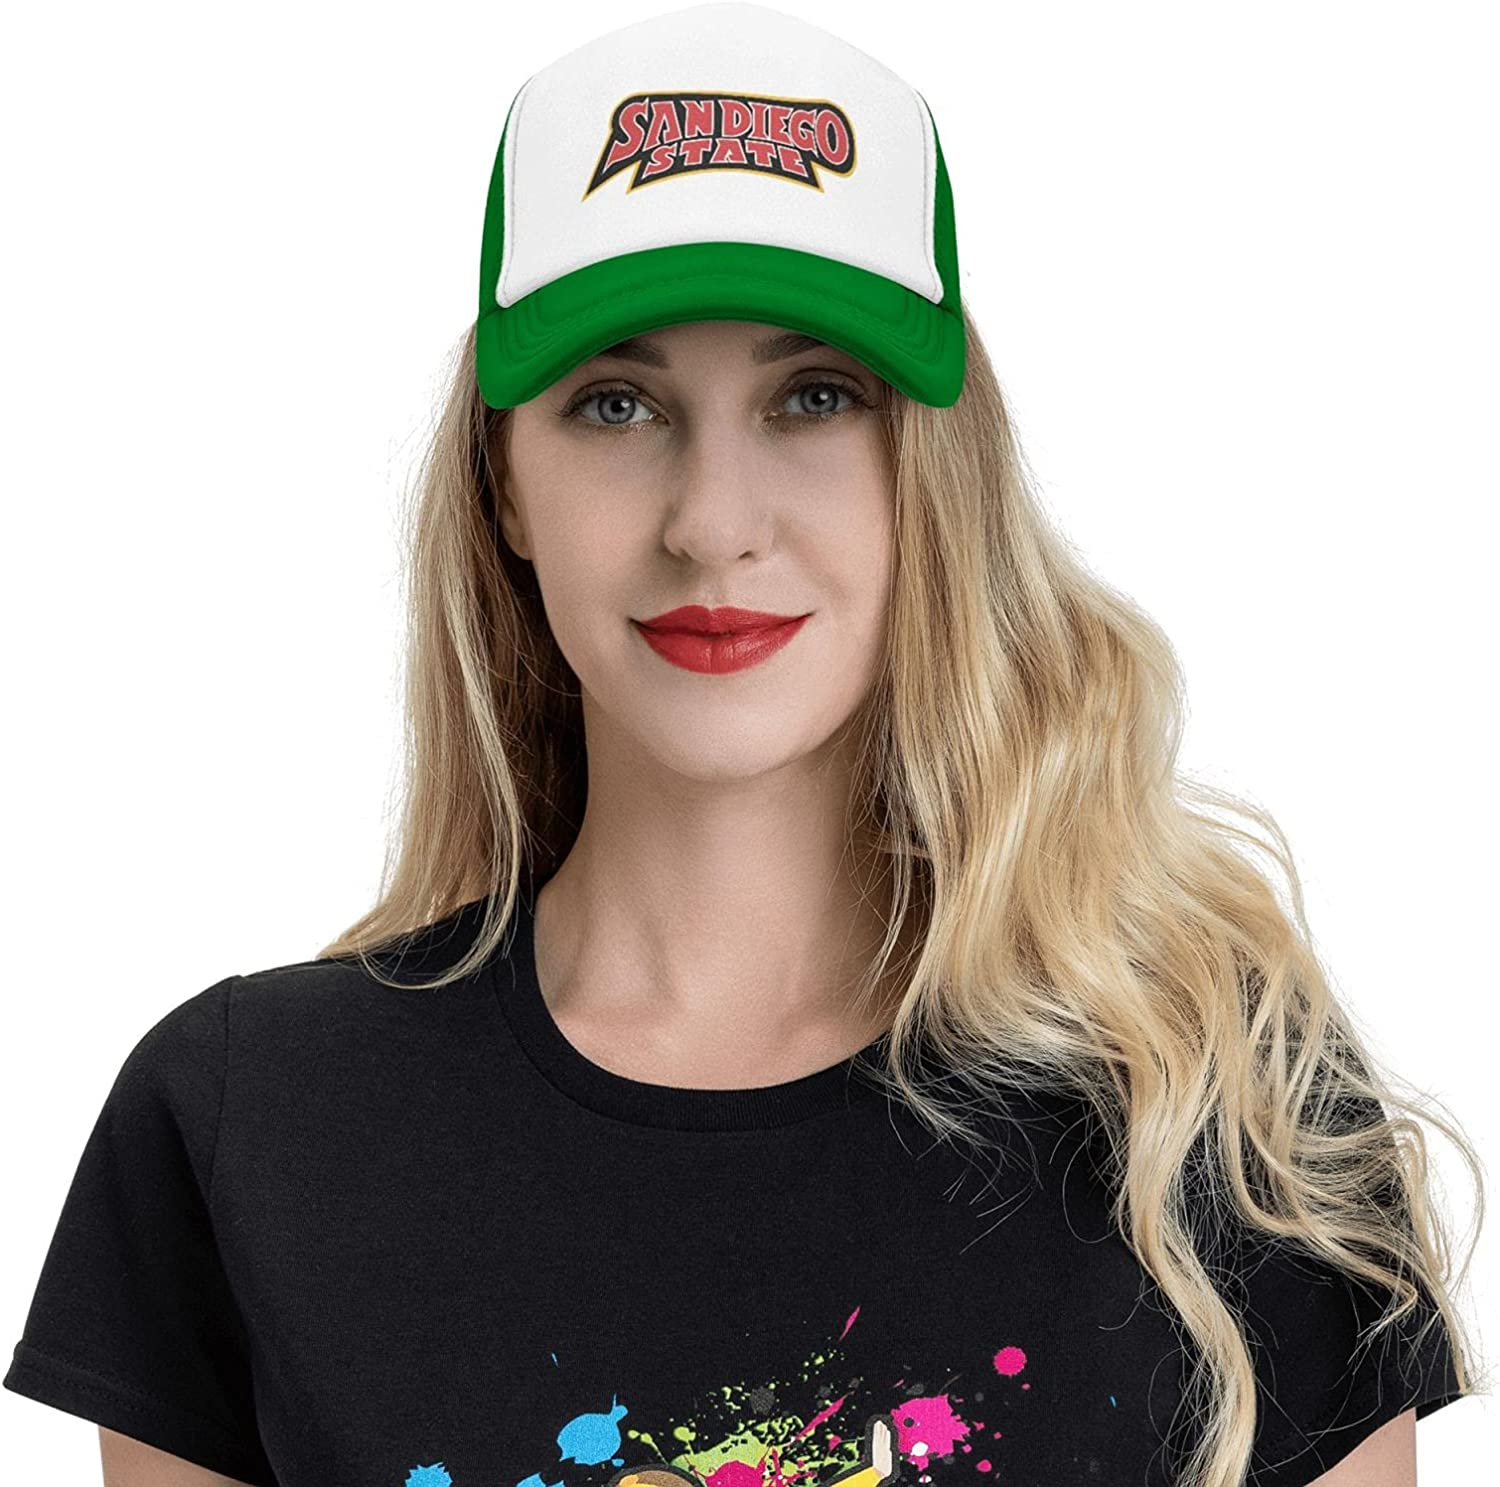 San-Diego State University Logo Unisex Best Kicker Cowboy Hat Adjustable Washable Dyed Baseball Cap is Perfect for College Students Green